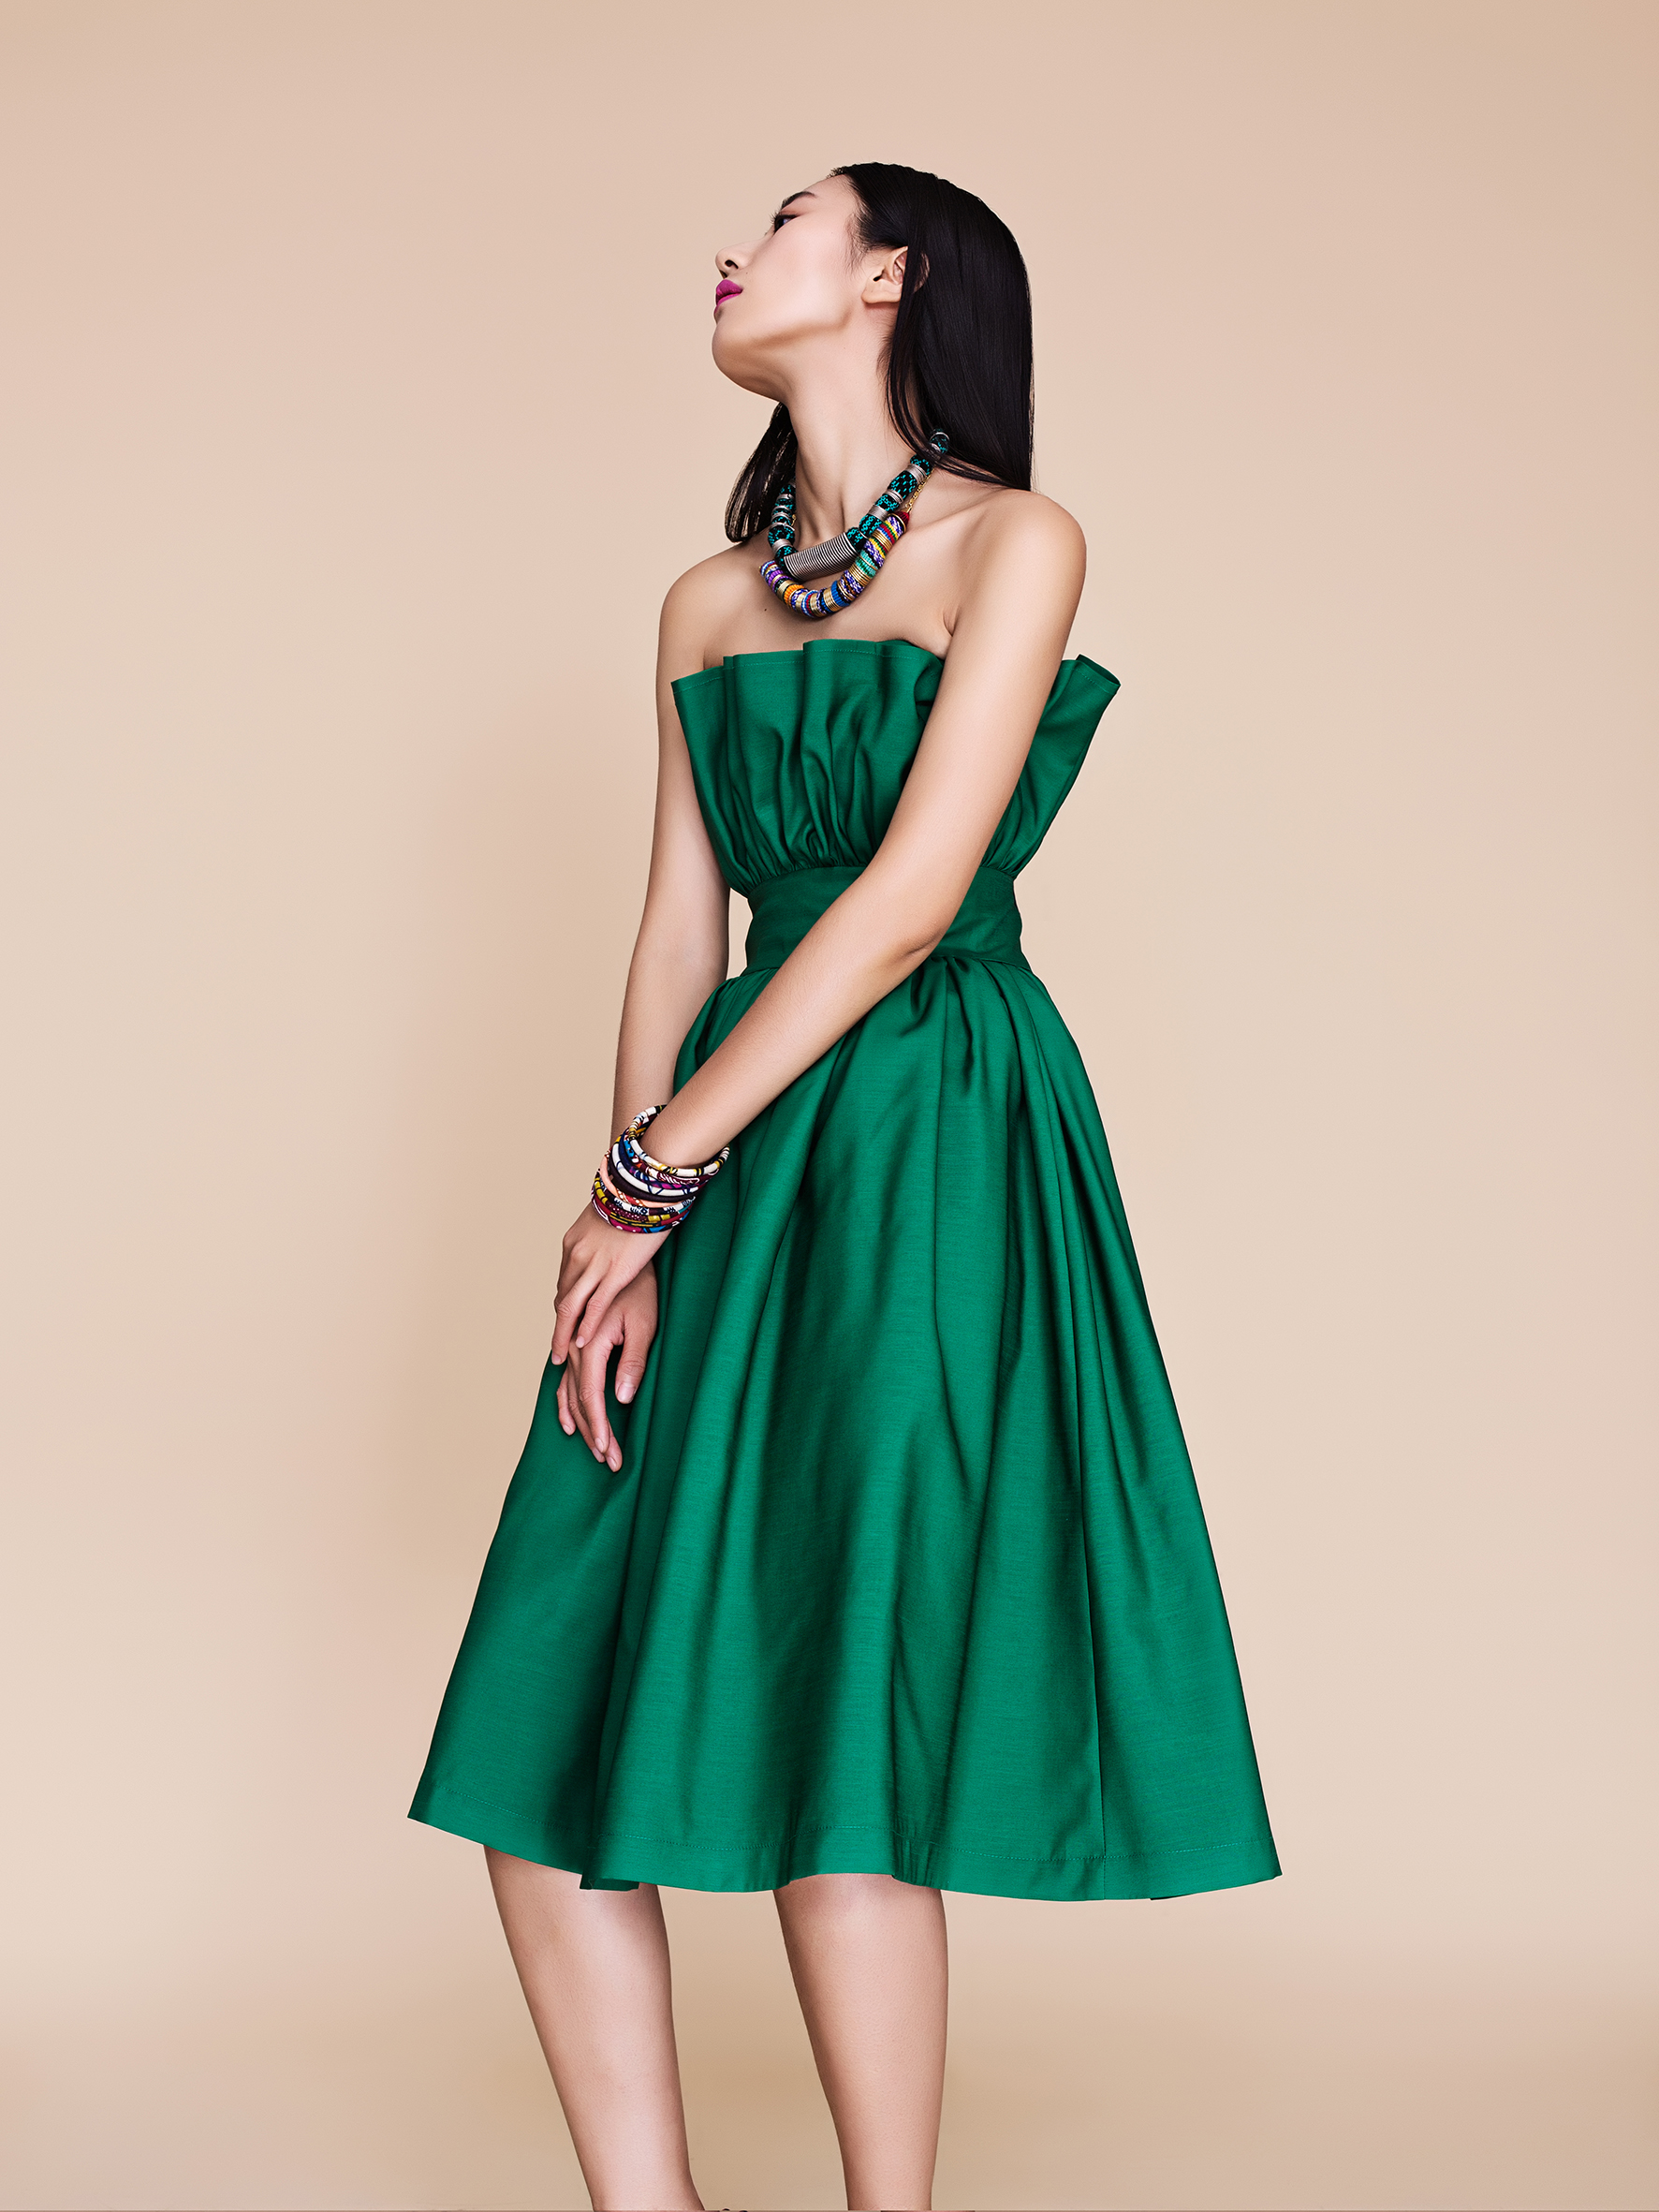 PLAKINGER SS16 GREEN RUFFLED DRESS